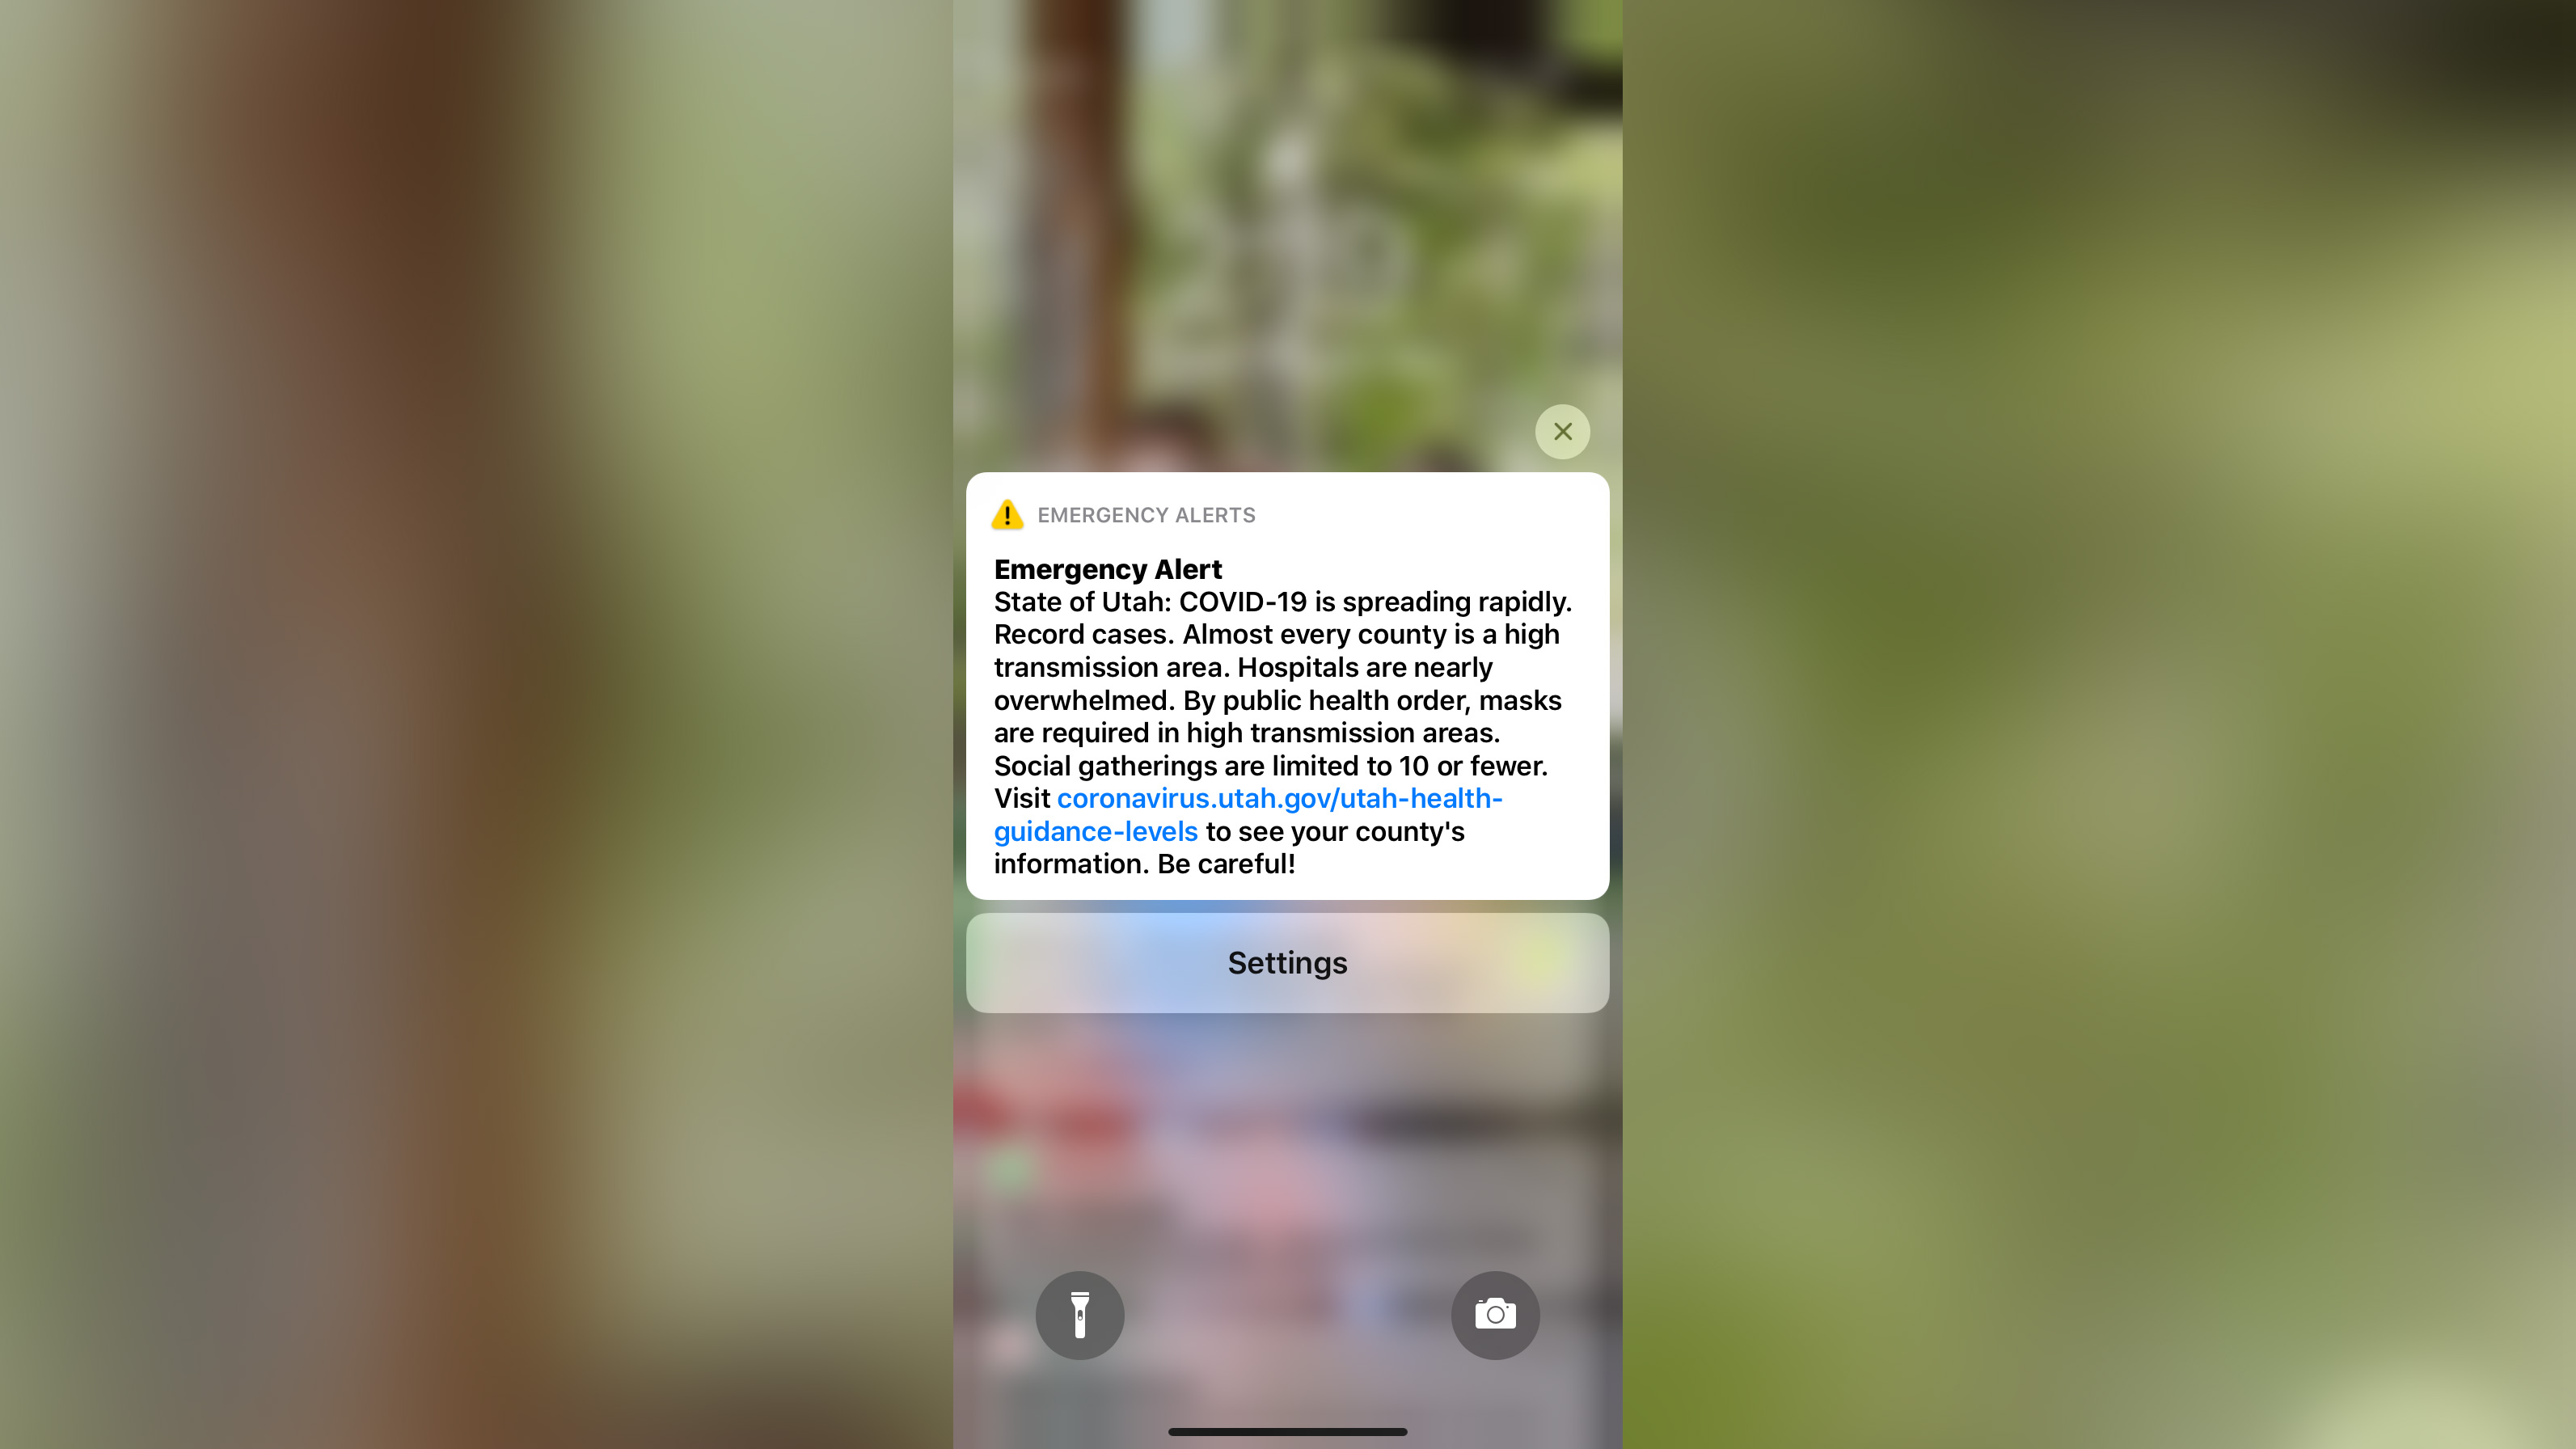 Utah sent every phone in the state an emergency alert warning about rapidly rising Covid-19 cases and overwhelmed hospitals